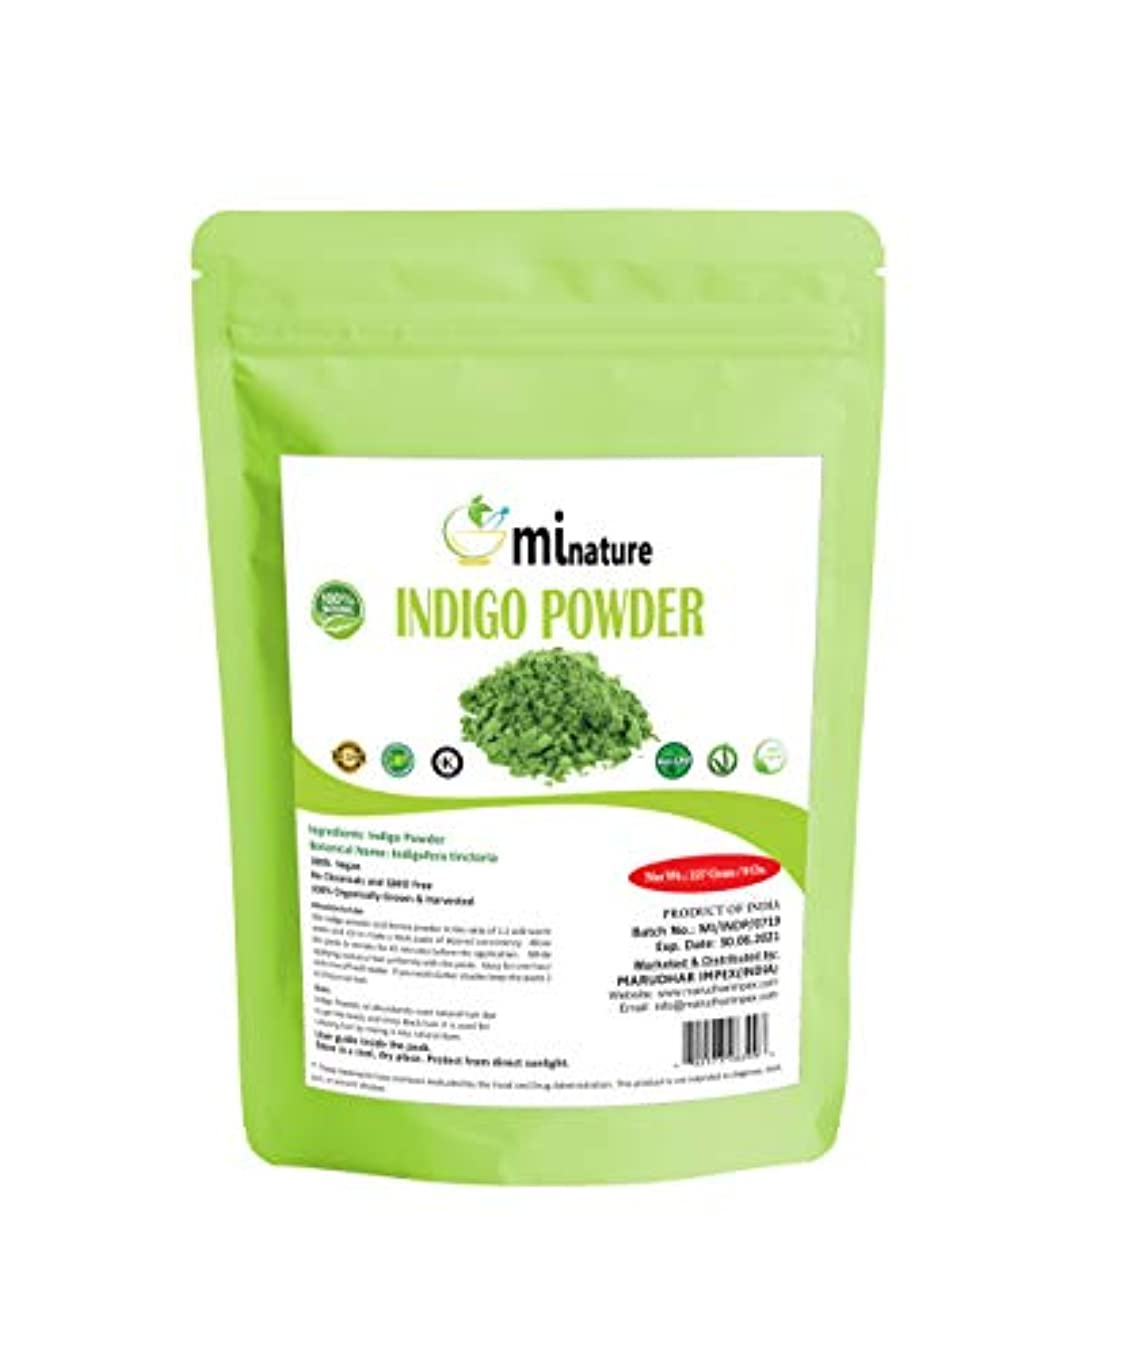 メンテナンスこれまでずんぐりしたmi nature Indigo Powder -INDIGOFERA TINCTORIA ,(100% NATURAL , ORGANICALLY GROWN ) 1/2 LB (227 grams) RESEALABLE BAG